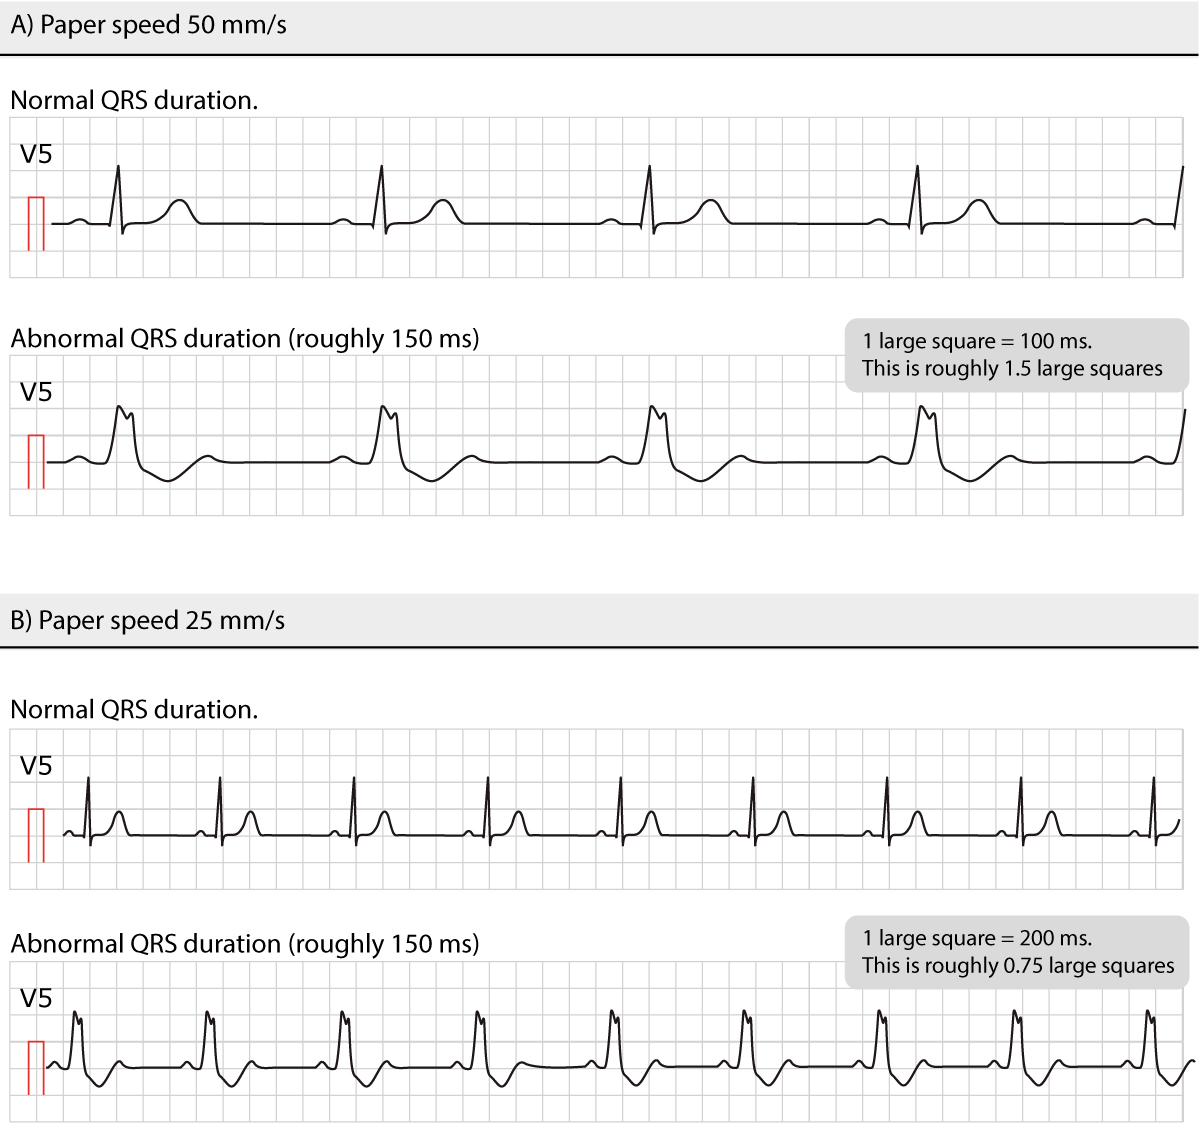 Figure 8. Normal and abnormal QRS durations at different paper speeds.